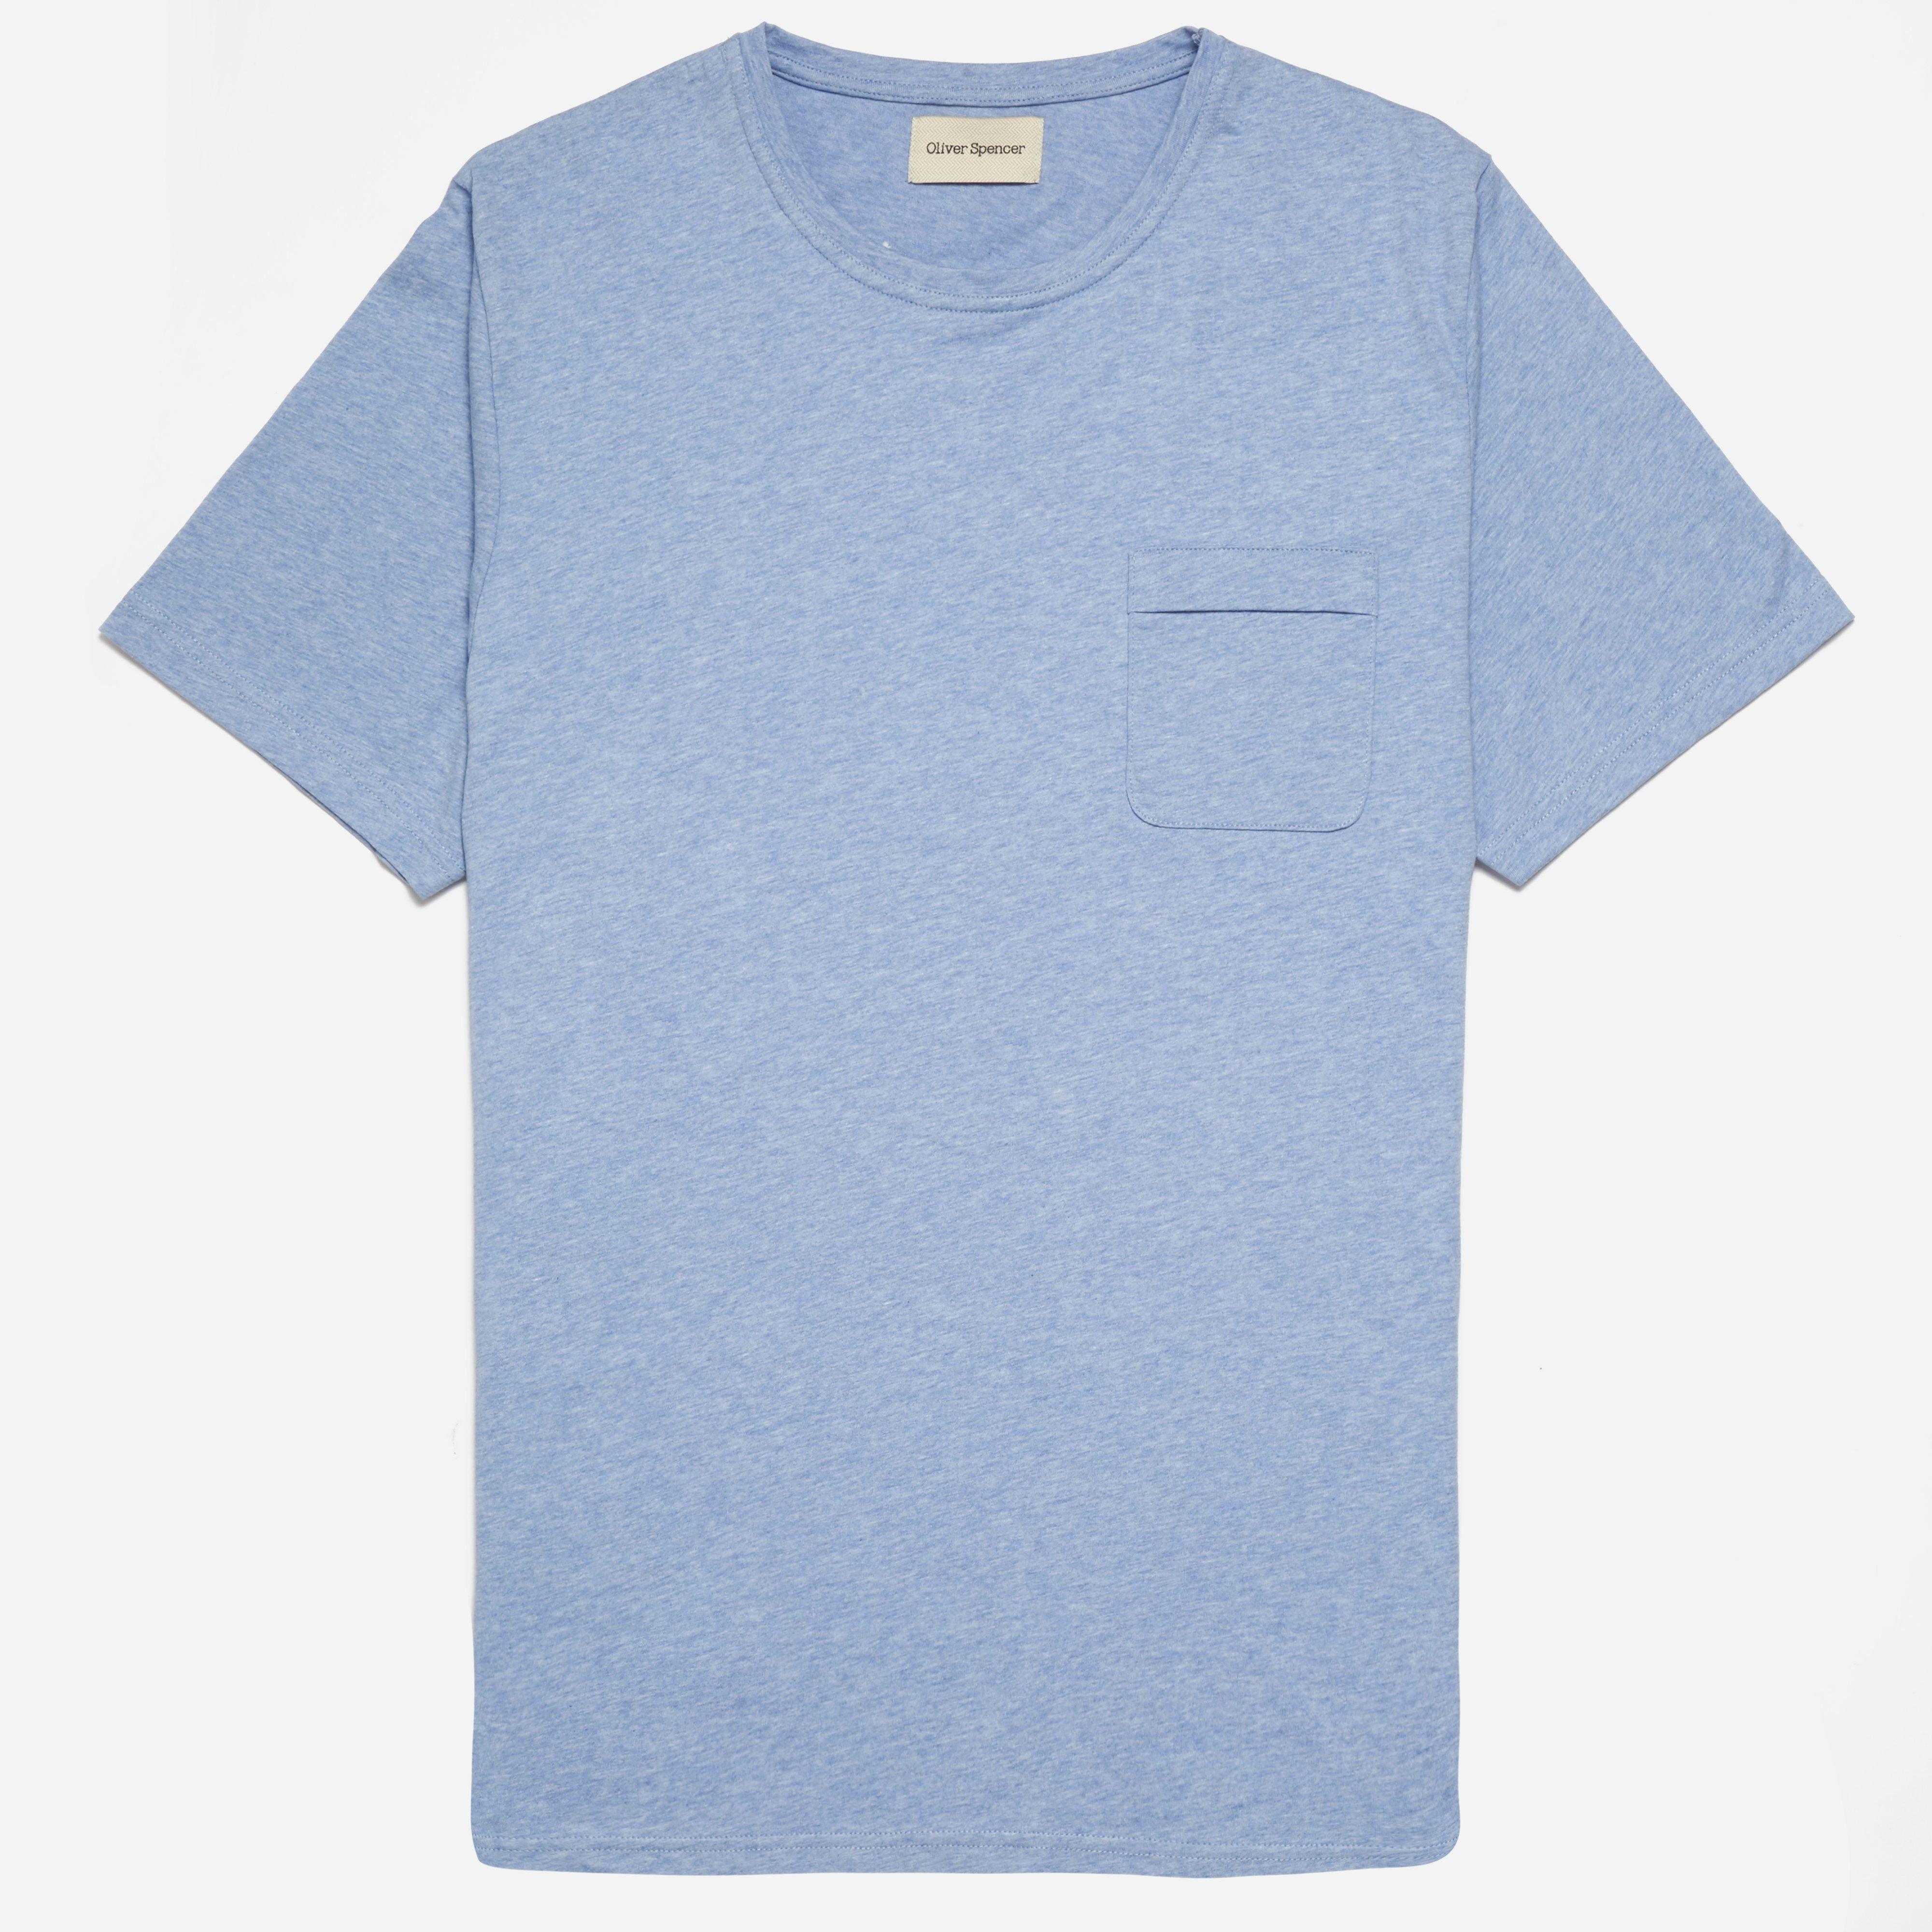 Oliver Spencer Envelope Tee